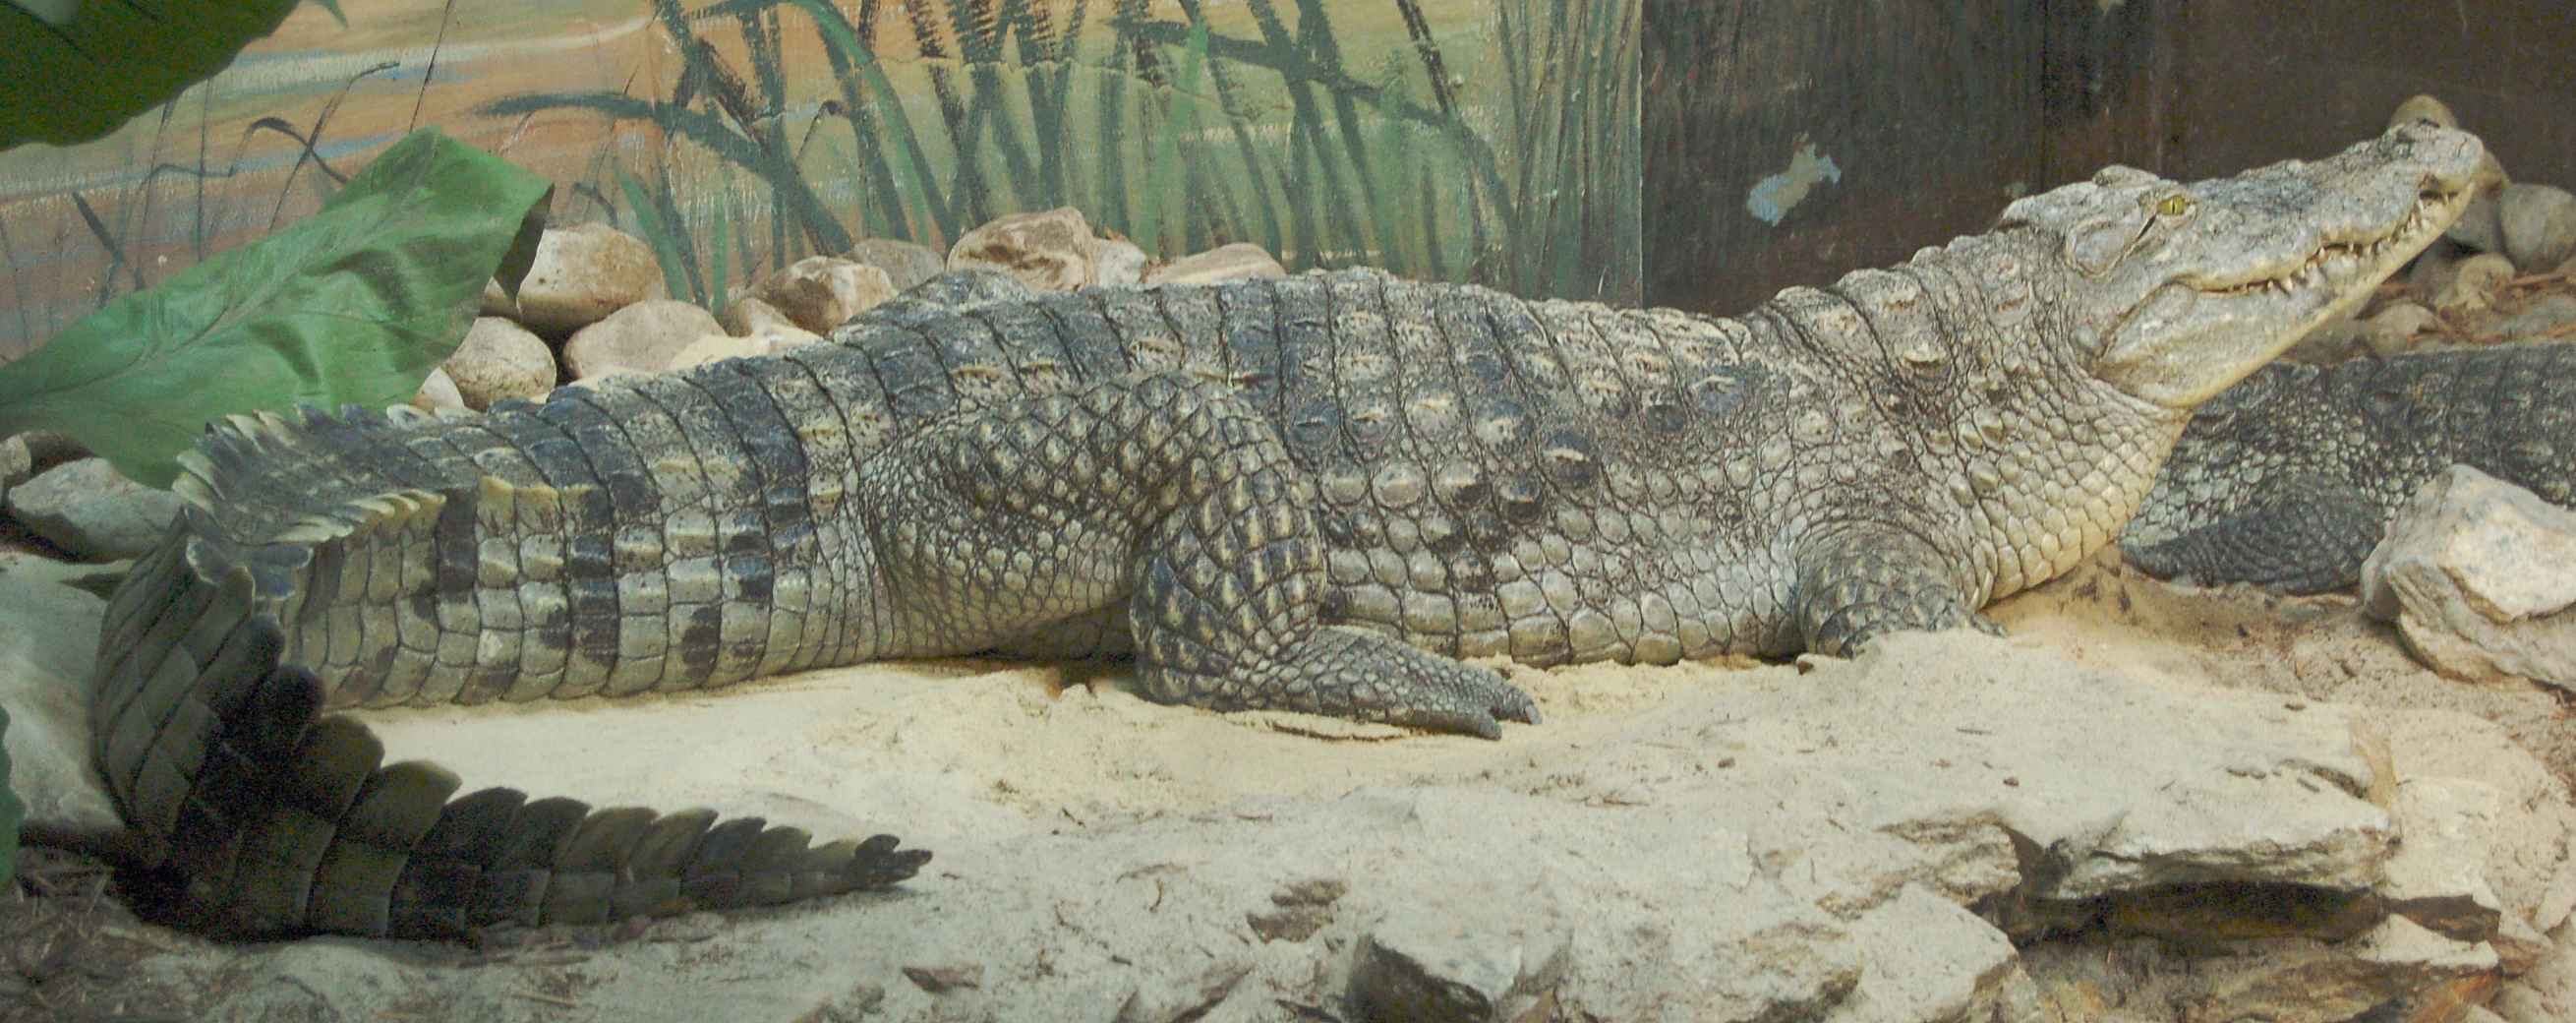 the nile crocodile Online shopping from a great selection at books store.